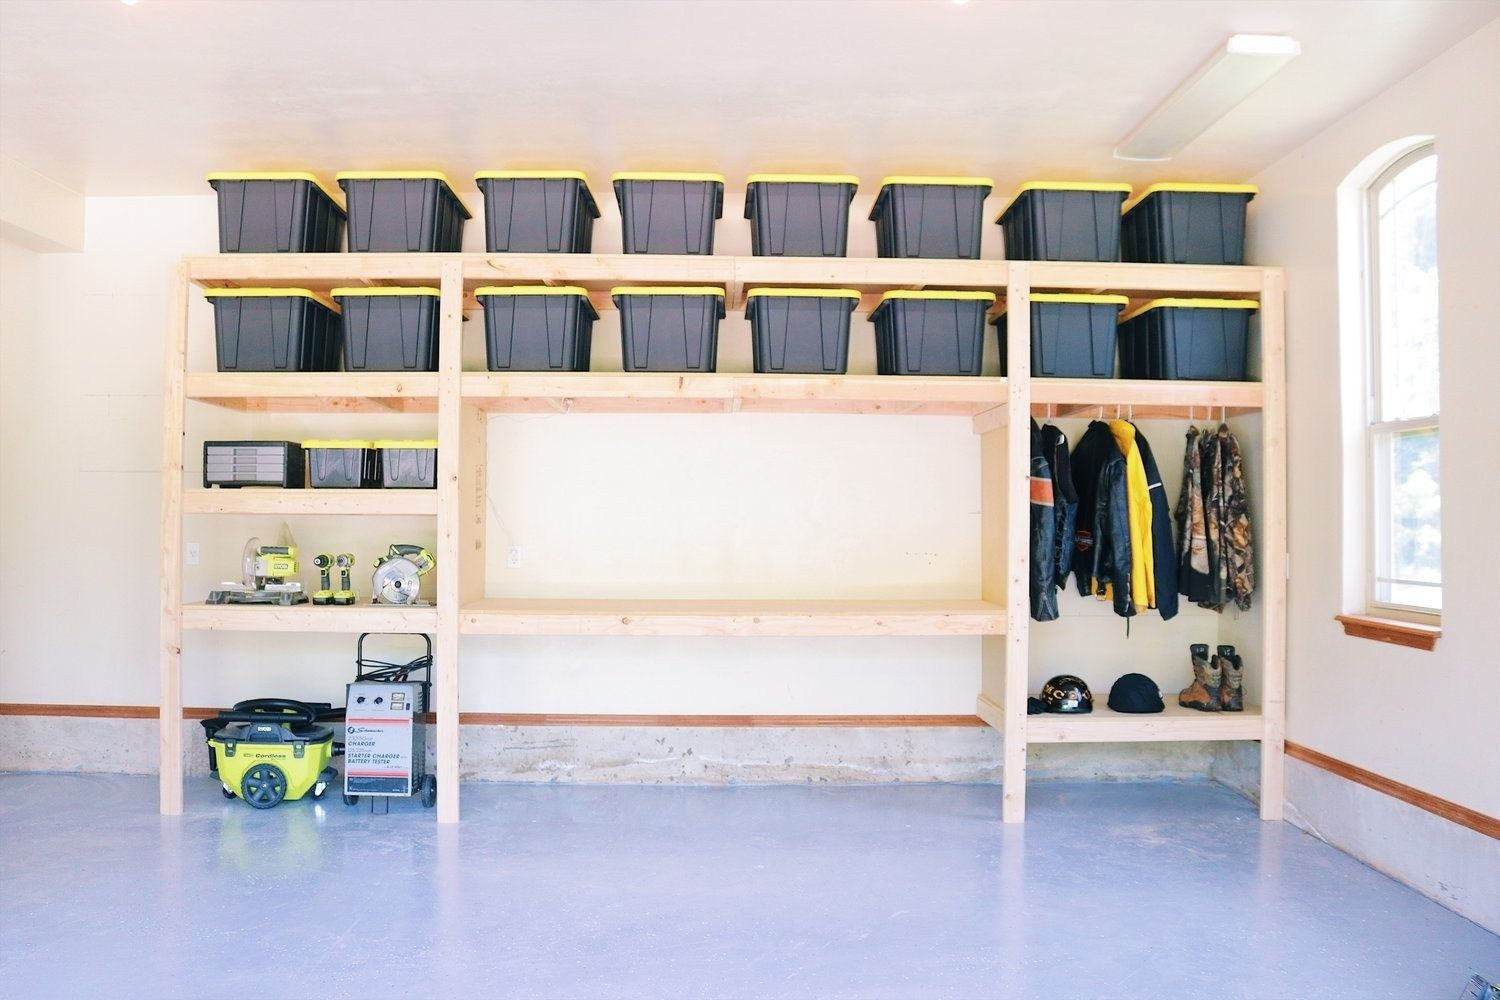 49 Relaxing Diy Garage Storage Organization Ideas